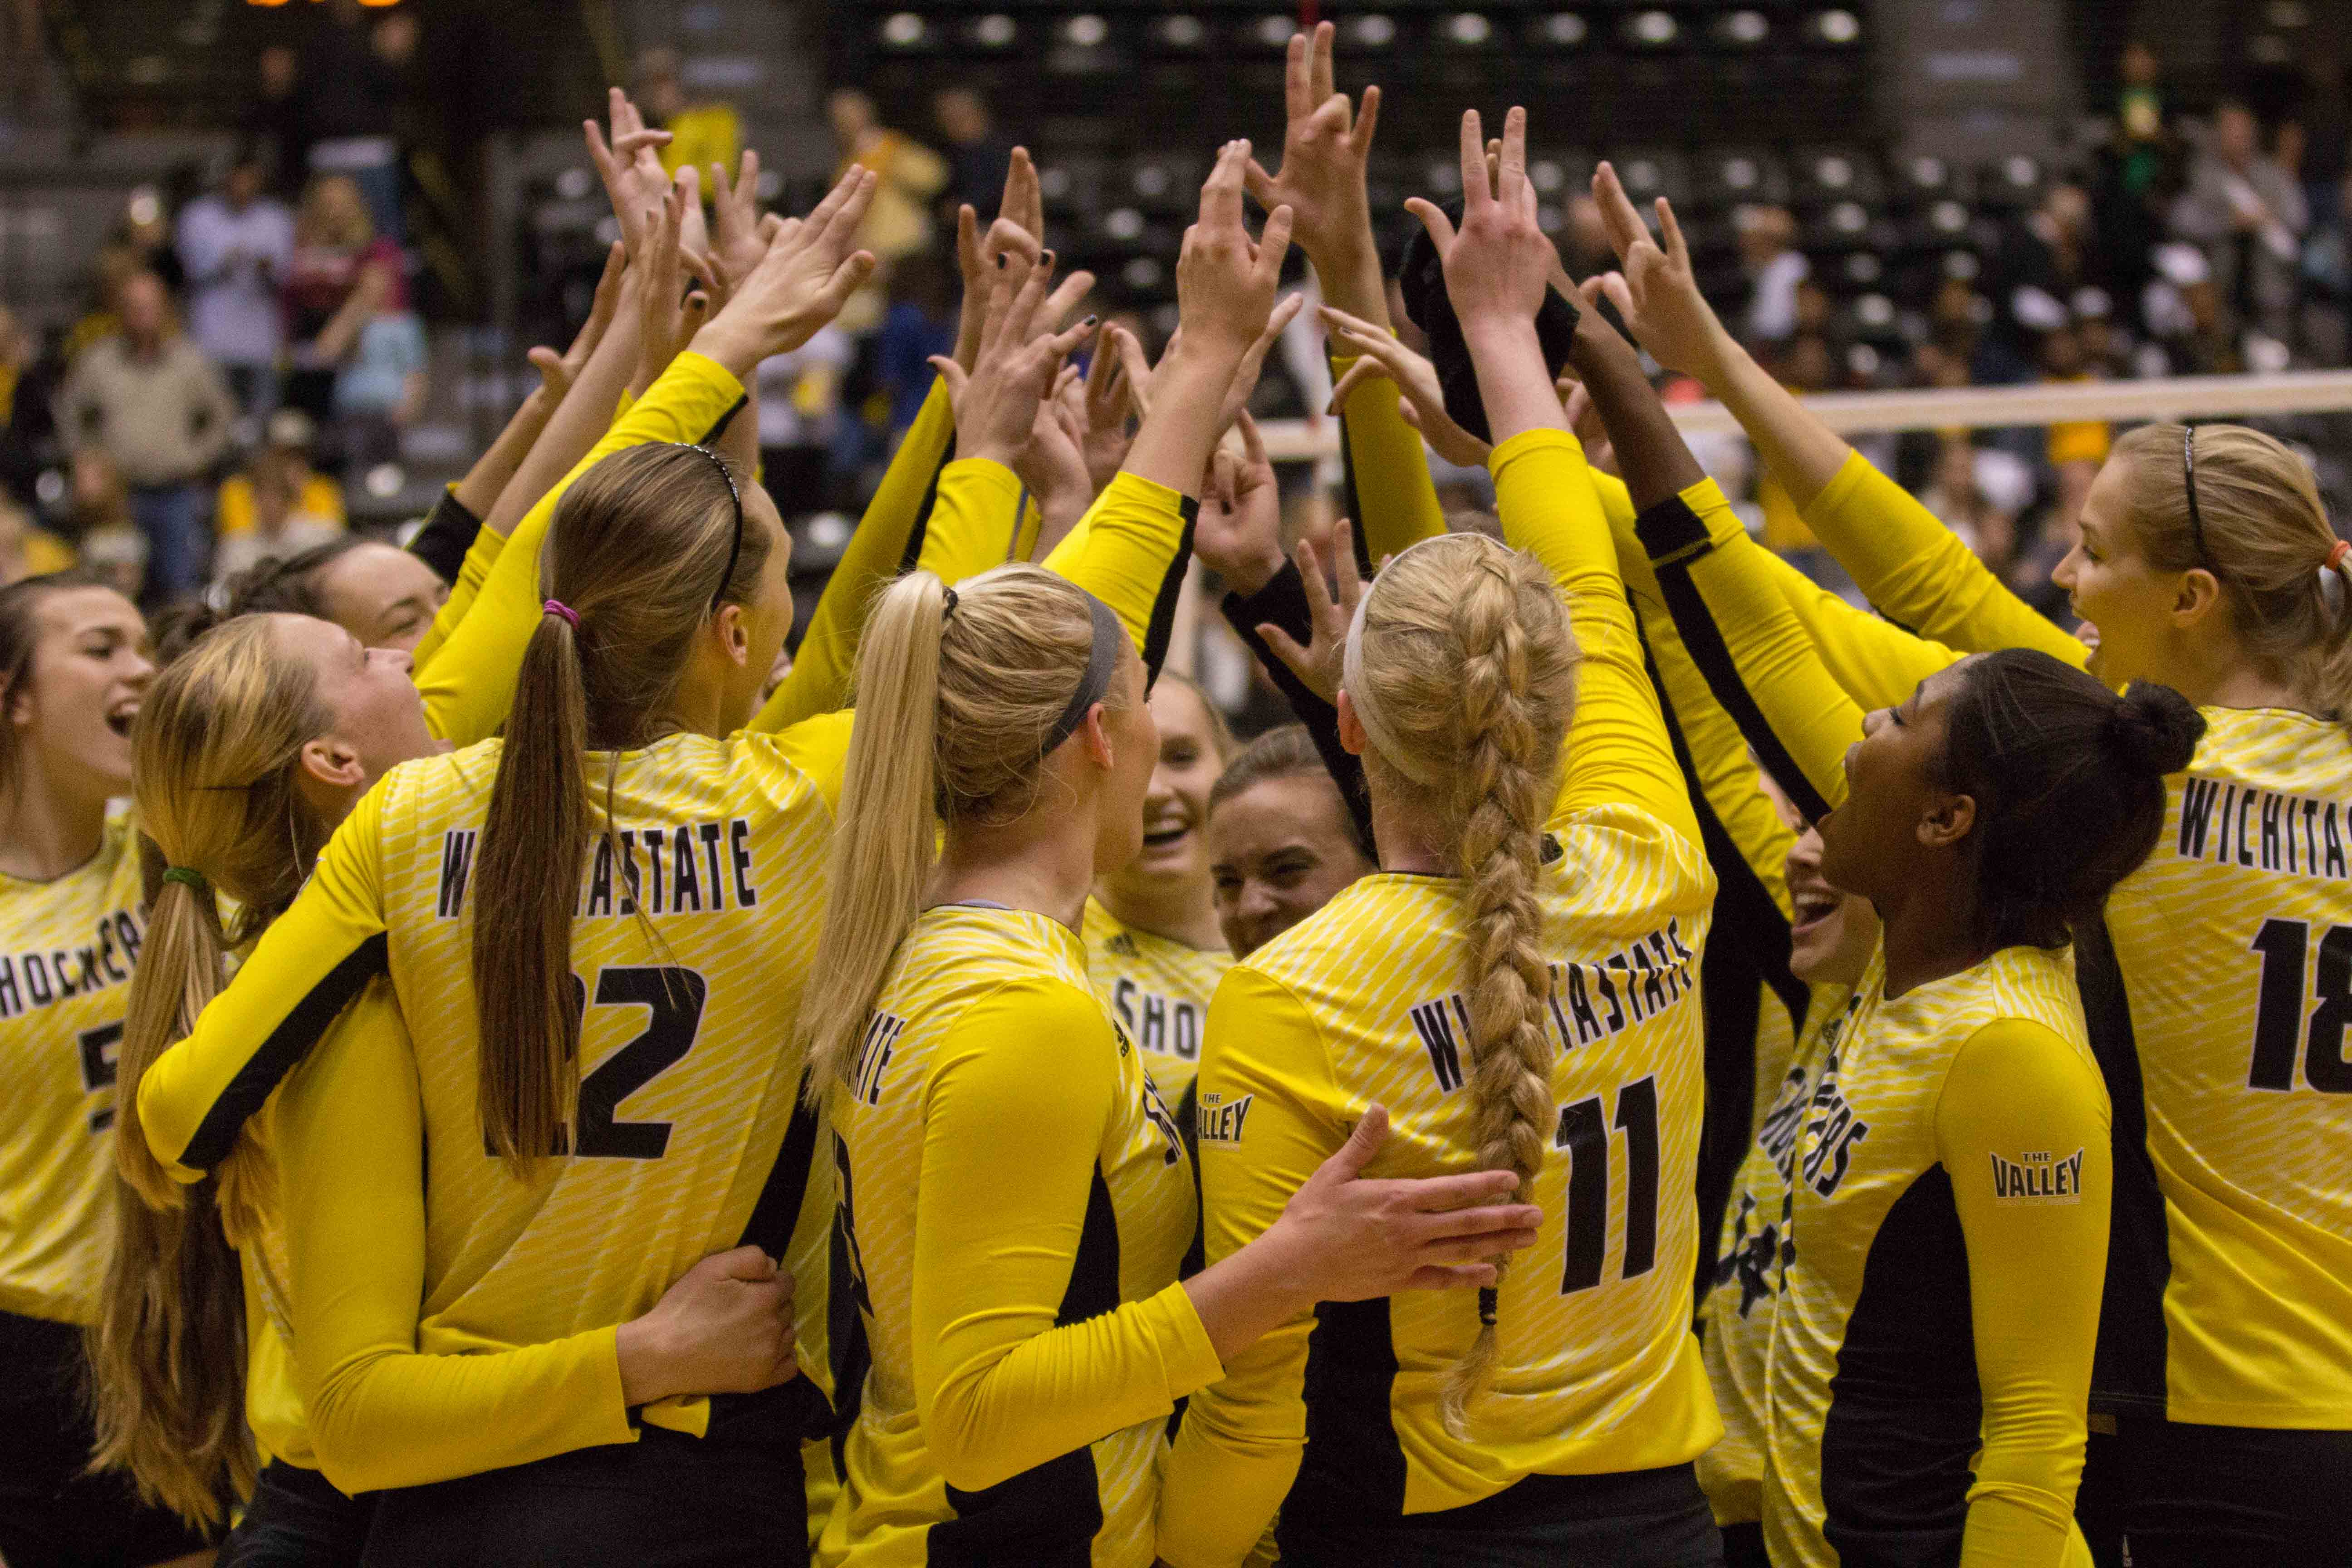 Wichita State puts their hands in after Saturday's sweep of Indiana State. The Shockers will find out who they play in the NCAA tournament on Sunday at 9 p.m.